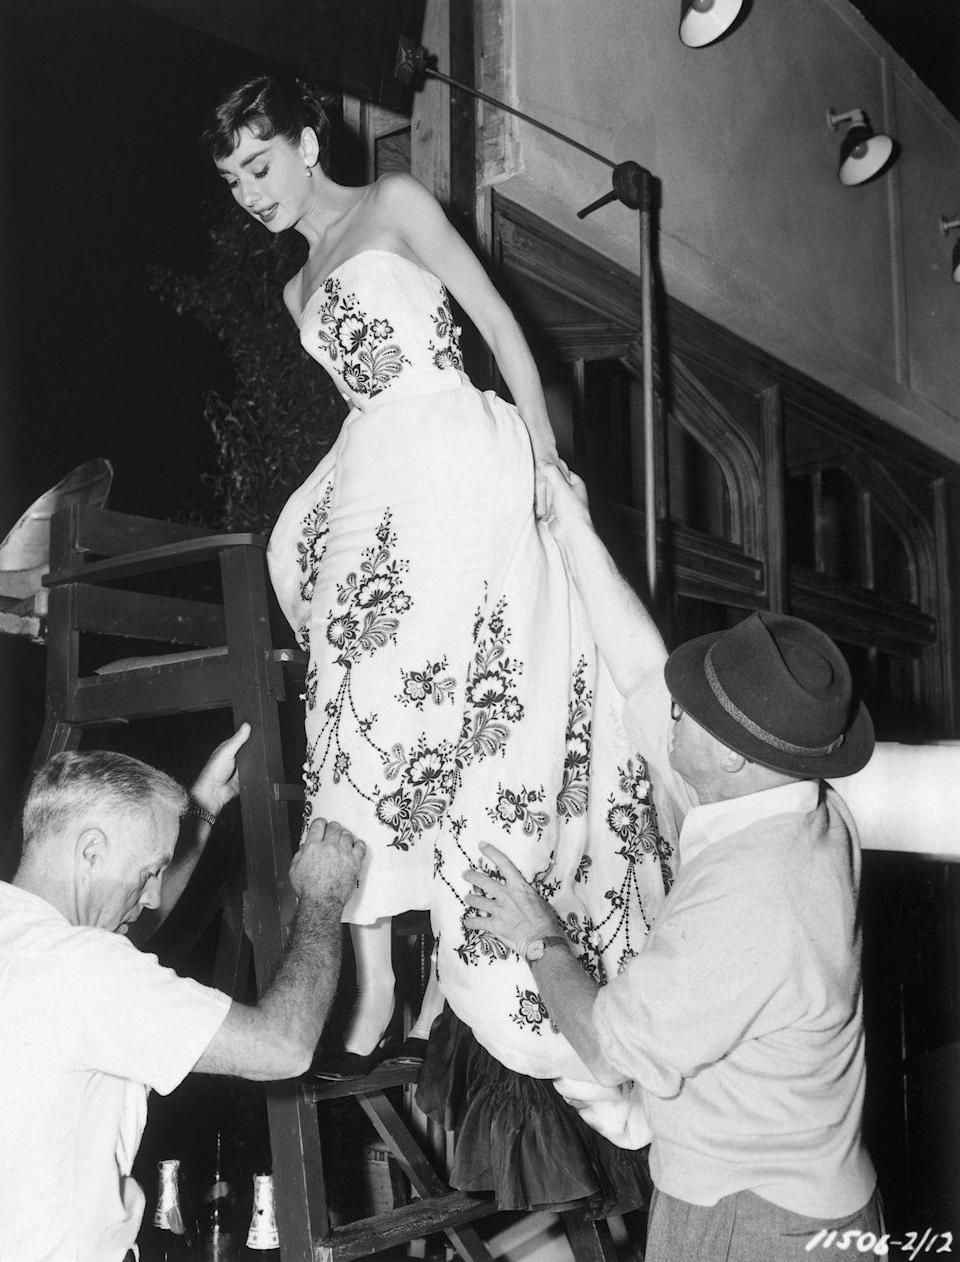 <p>Audrey Hepburn, dressed in an evening gown, is helped down a ladder by two men on the set of <em>Sabrina</em>. </p>